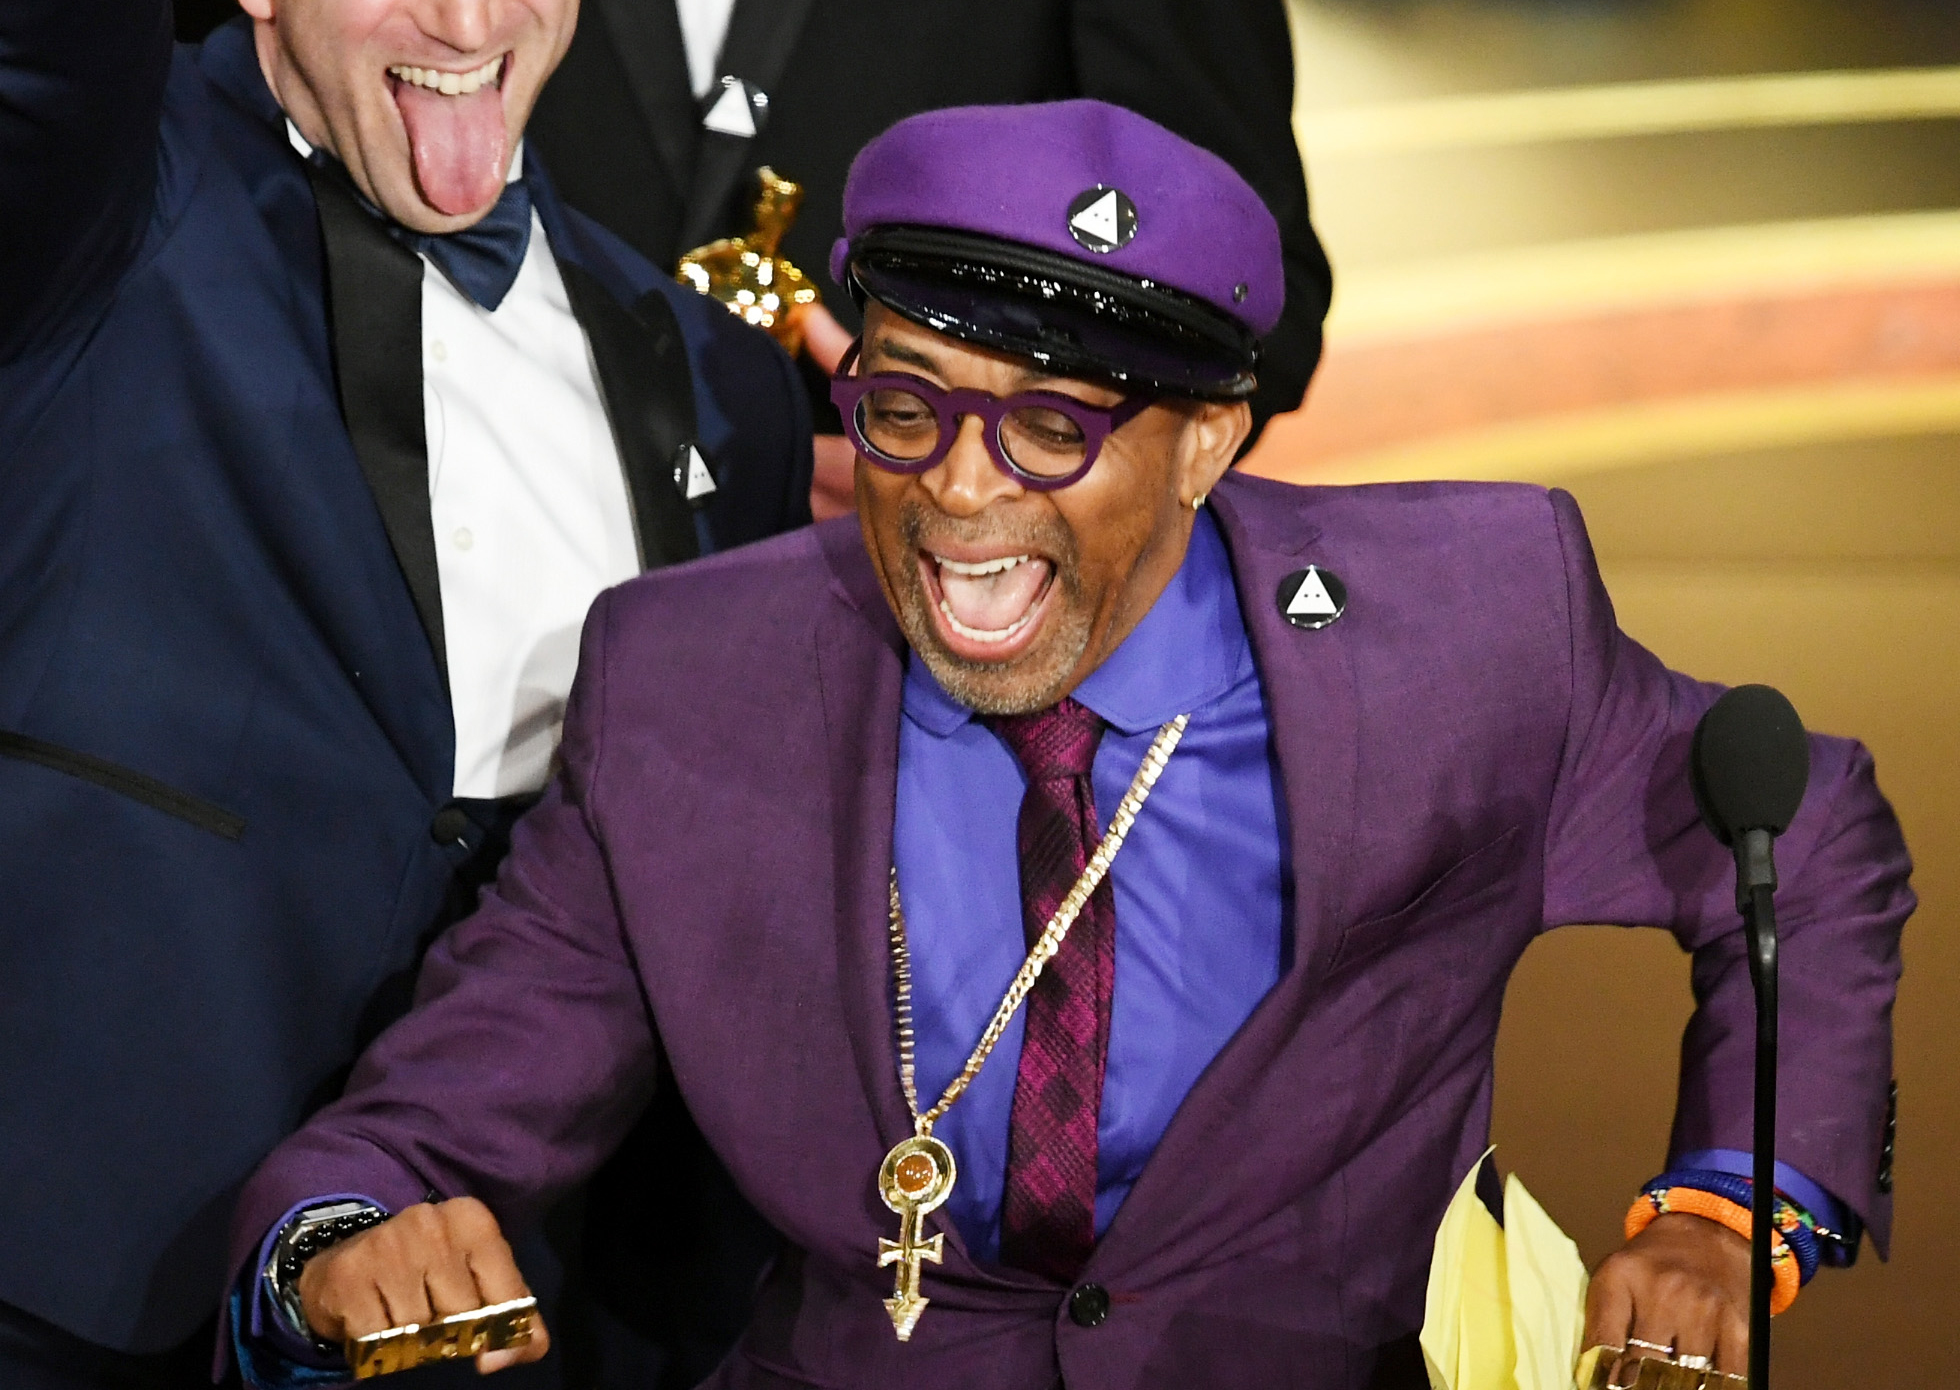 Spike Lee winning at the Oscars.